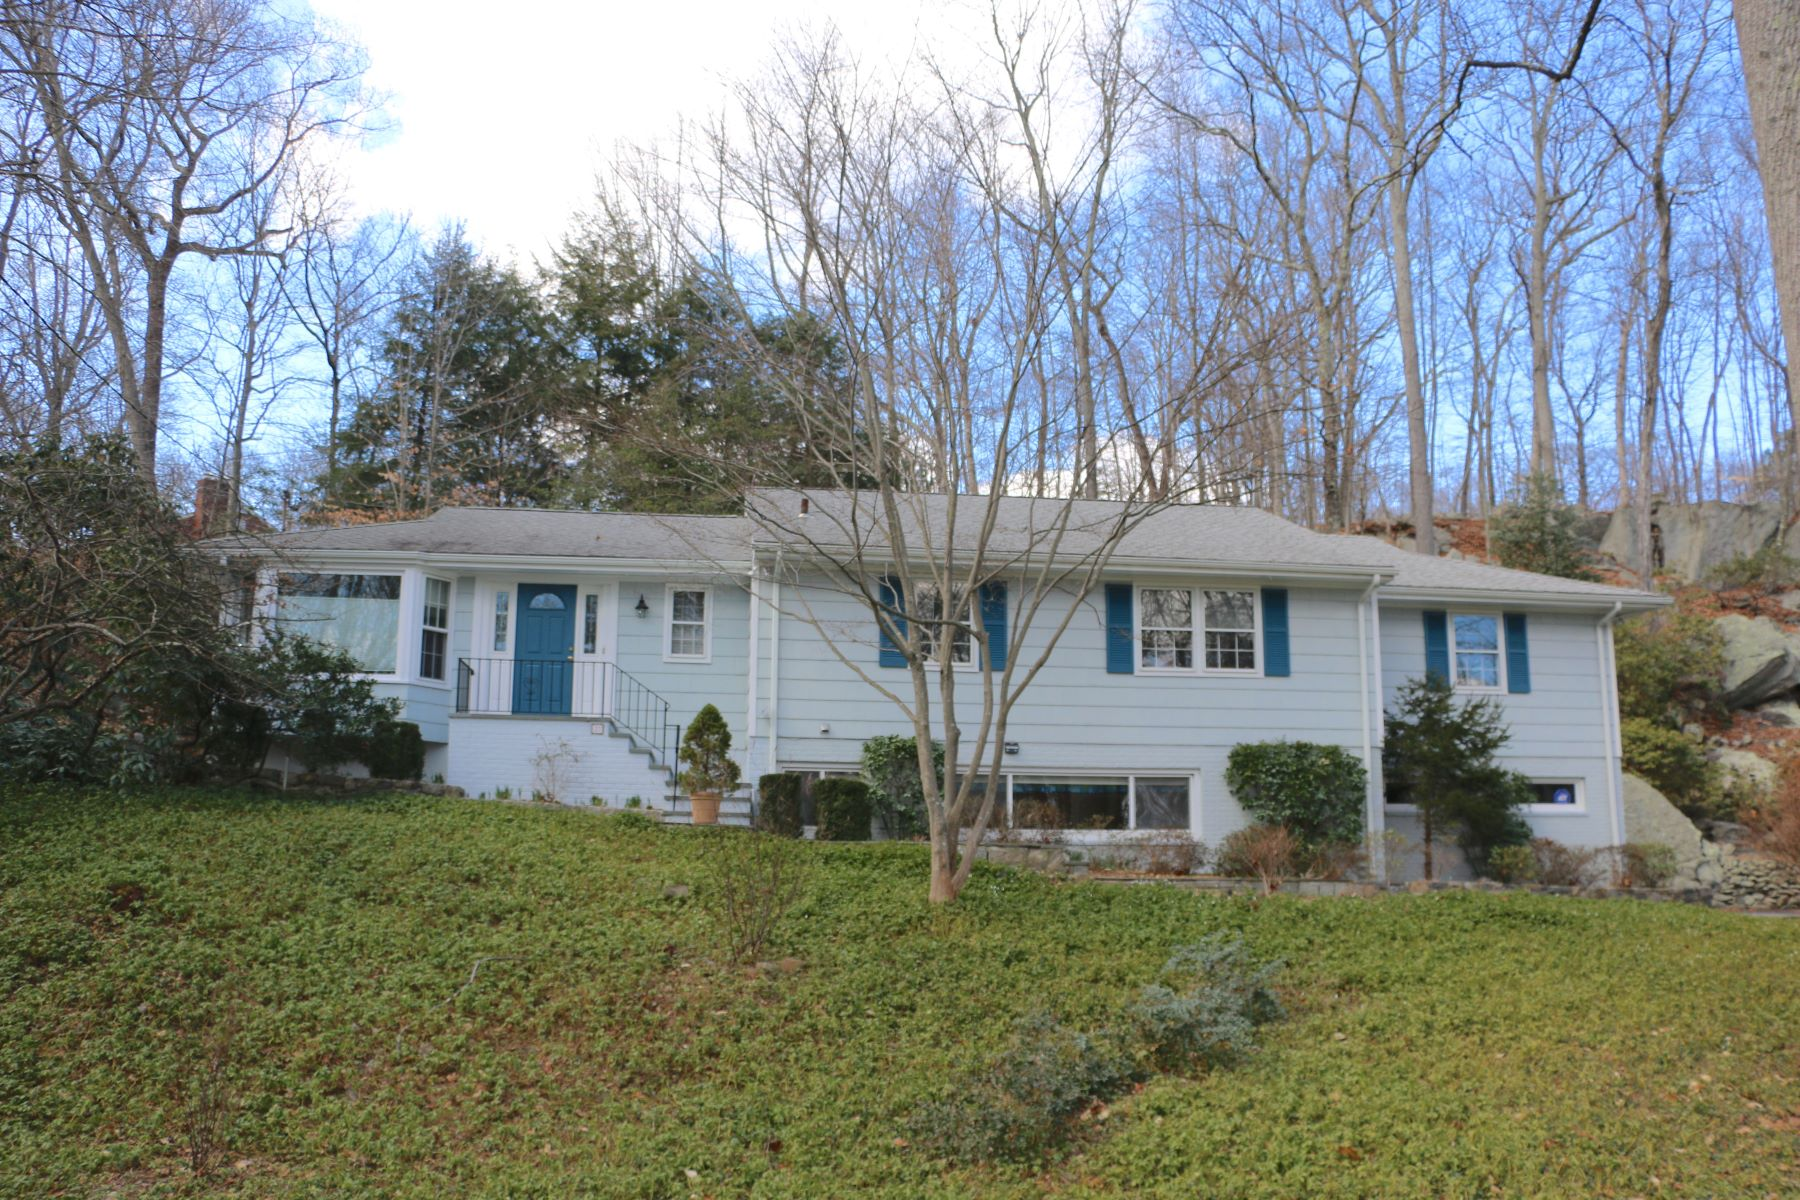 Single Family Home for Sale at Desirable Laurel Ledge Park 37 Tall Oaks Road, Stamford, Connecticut, 06903 United States